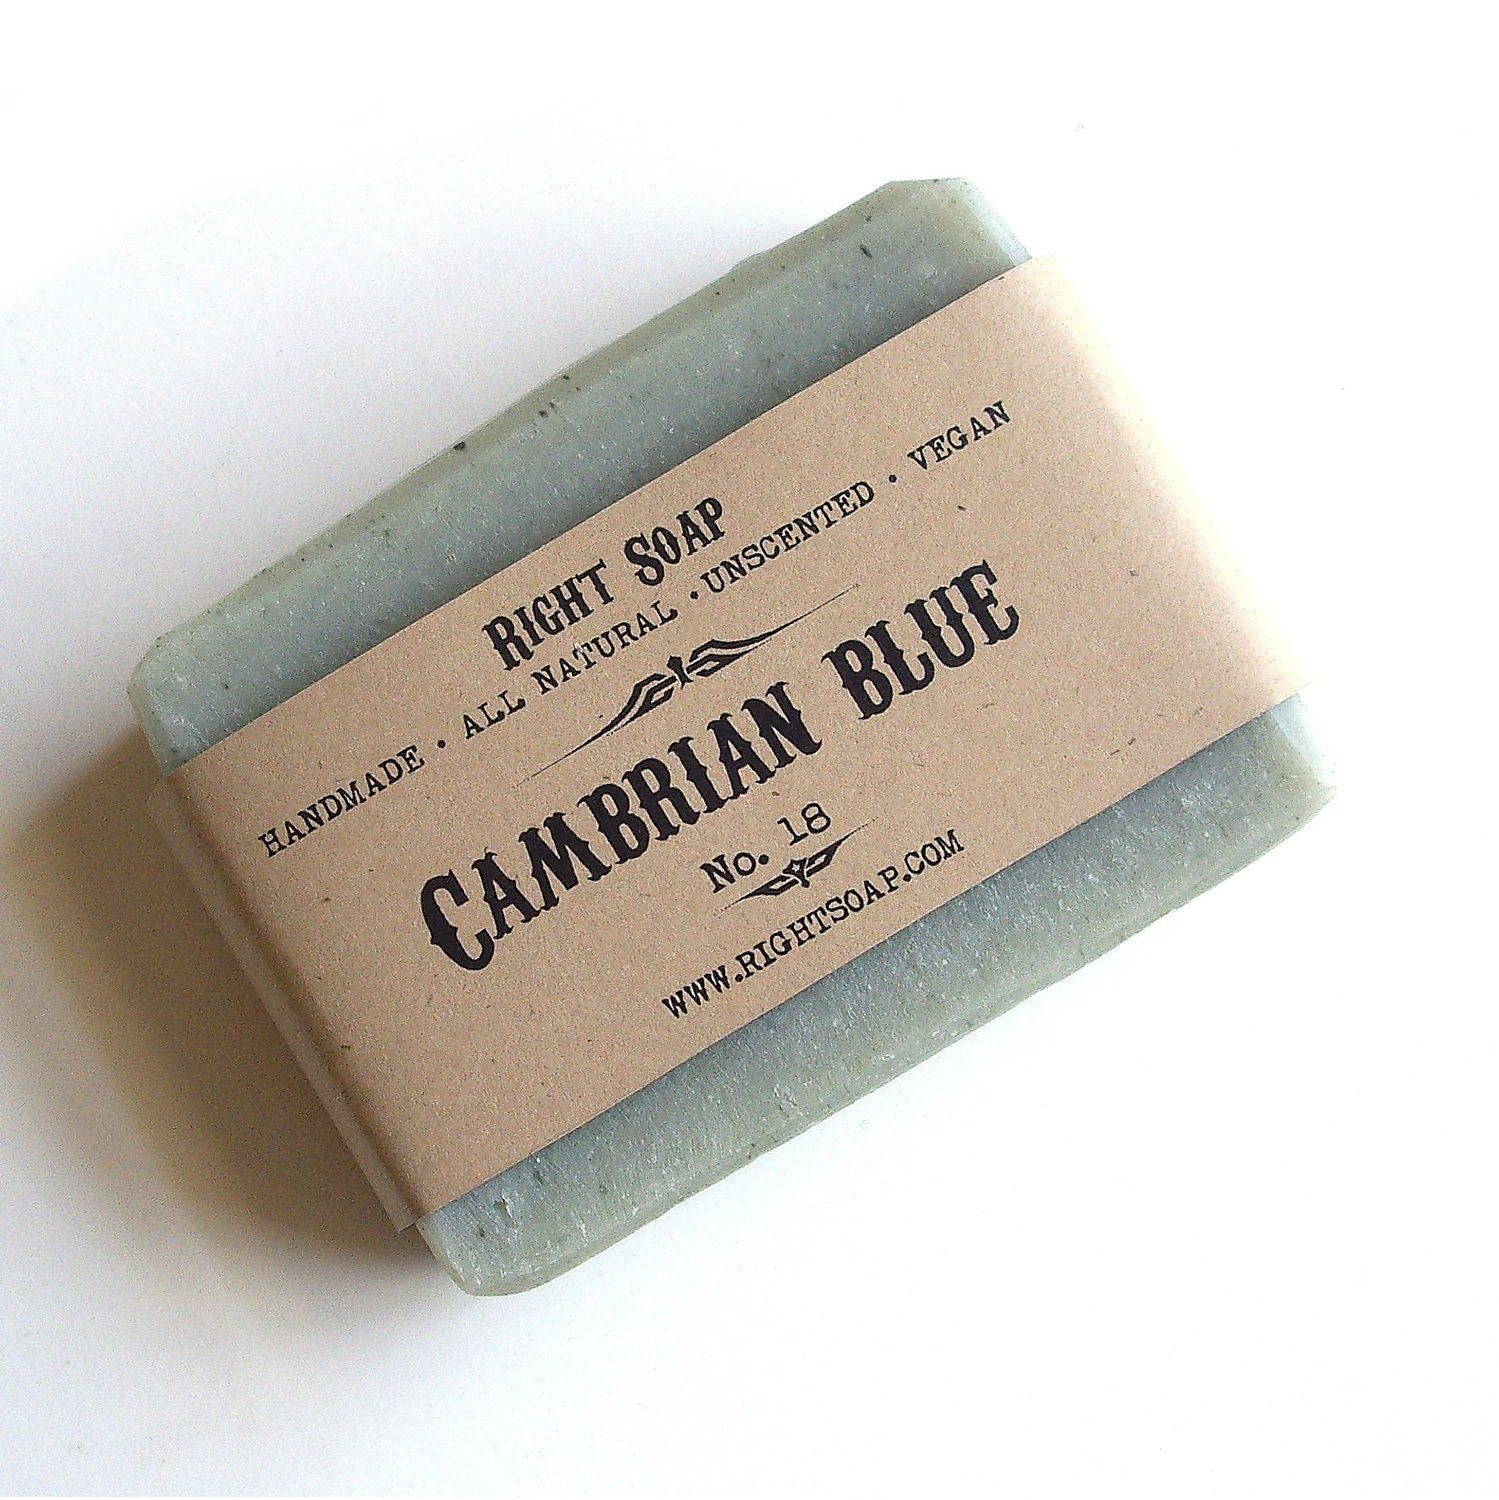 Cambrian Blue Soap - Detox soap, All Natural soap, Vegan soap, Unscented Soap - RightSoap